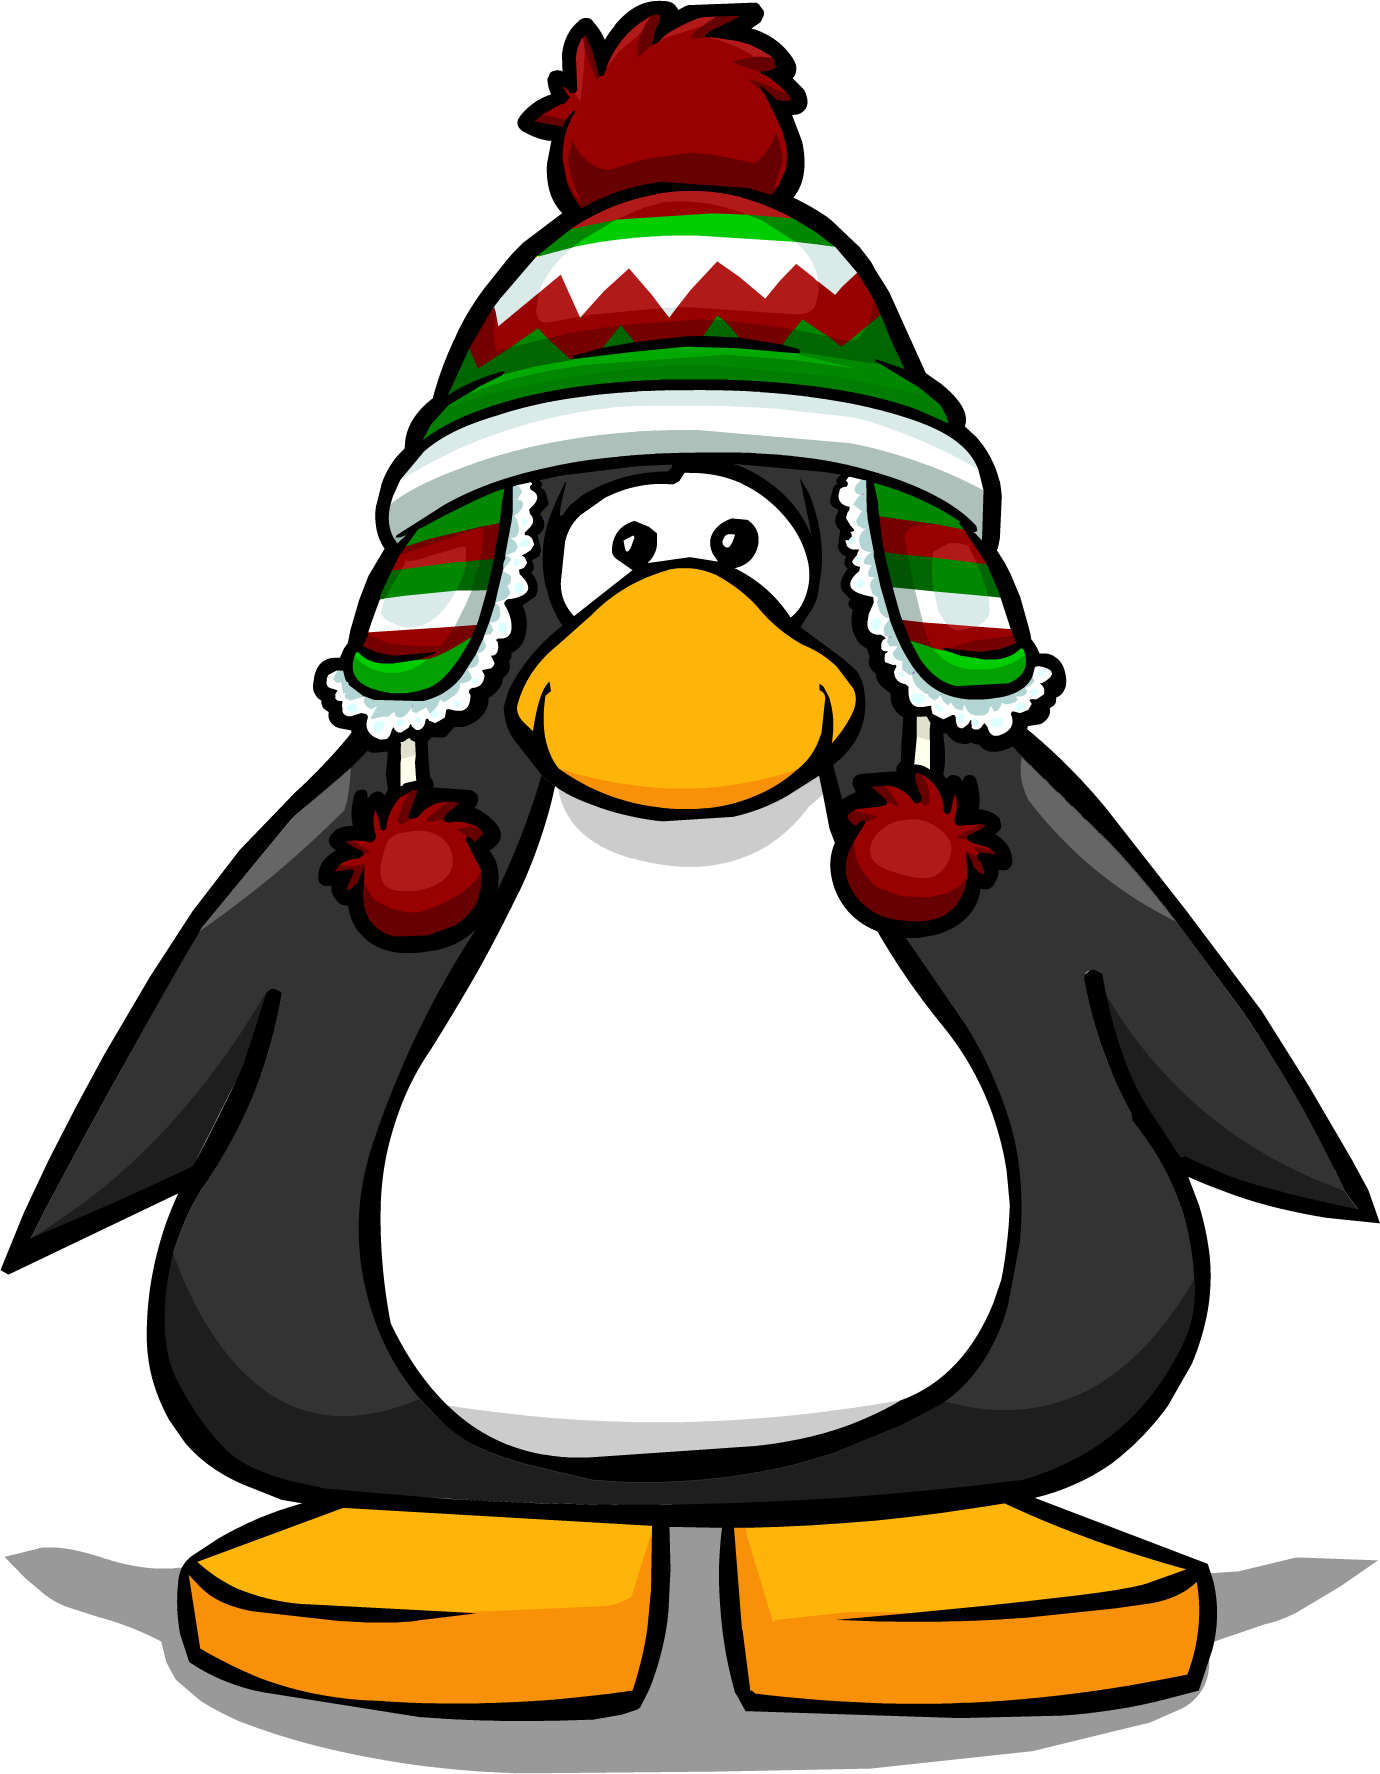 Holiday penguin png. Image toque pc club